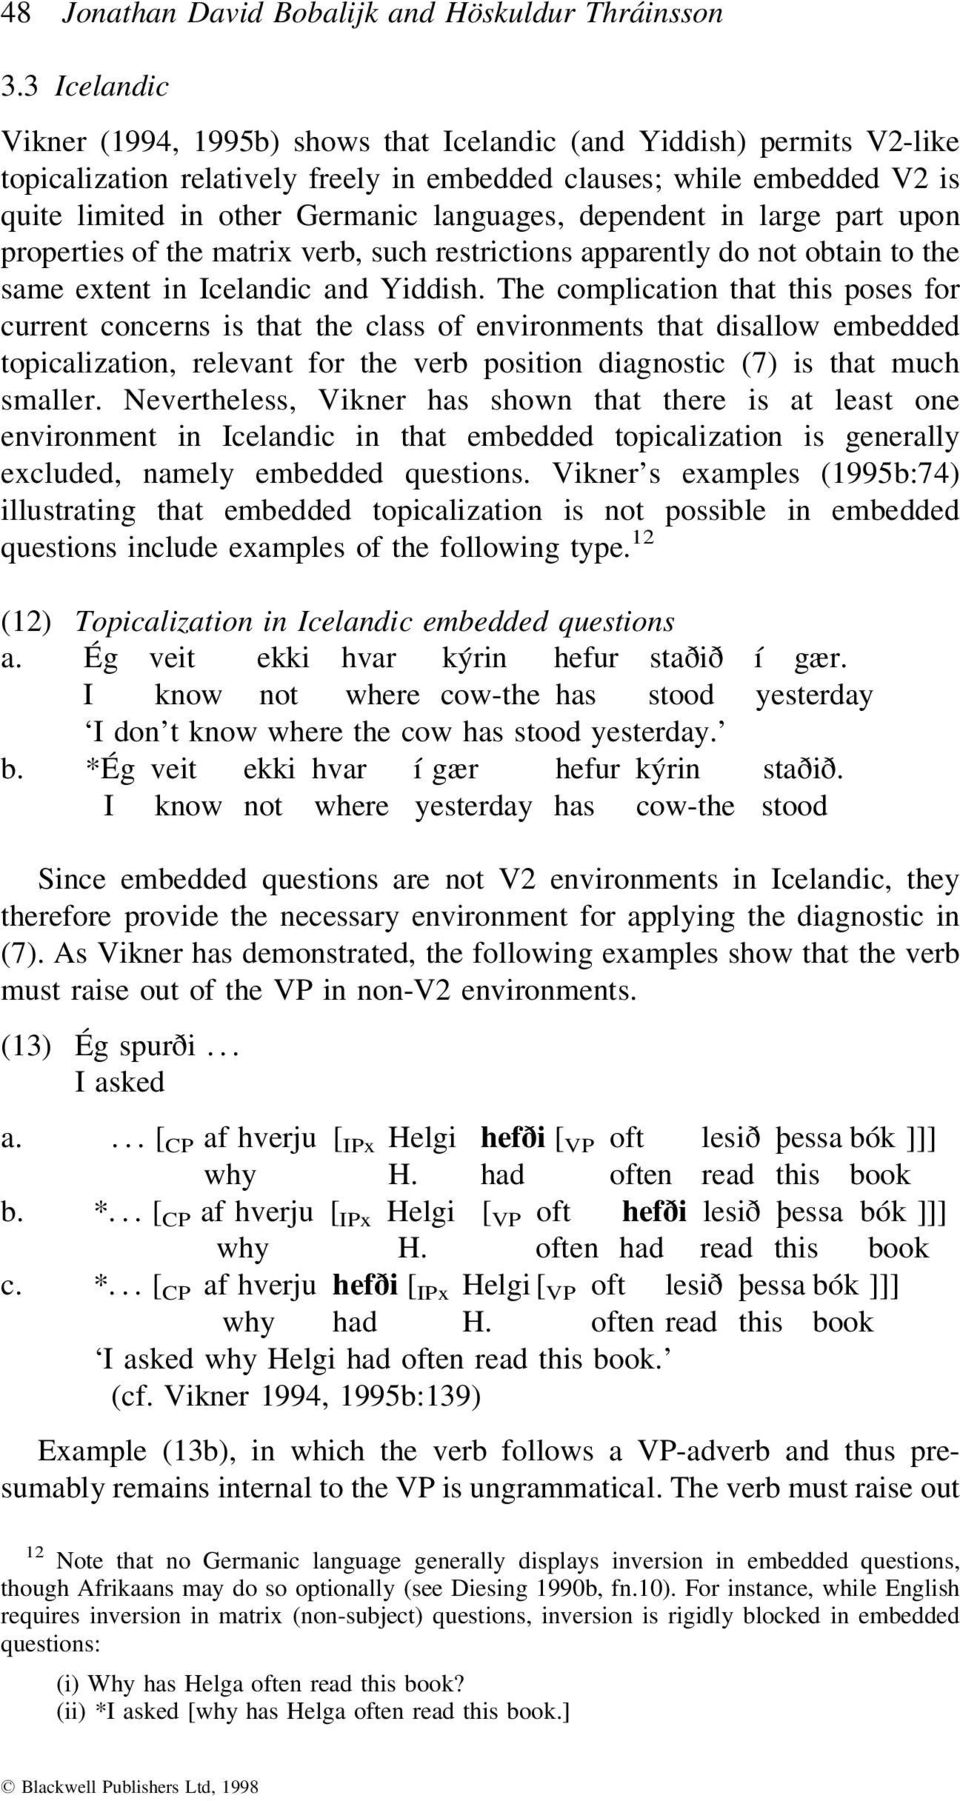 languages, dependent in large part upon properties of the matrix verb, such restrictions apparently do not obtain to the same extent in Icelandic and Yiddish.